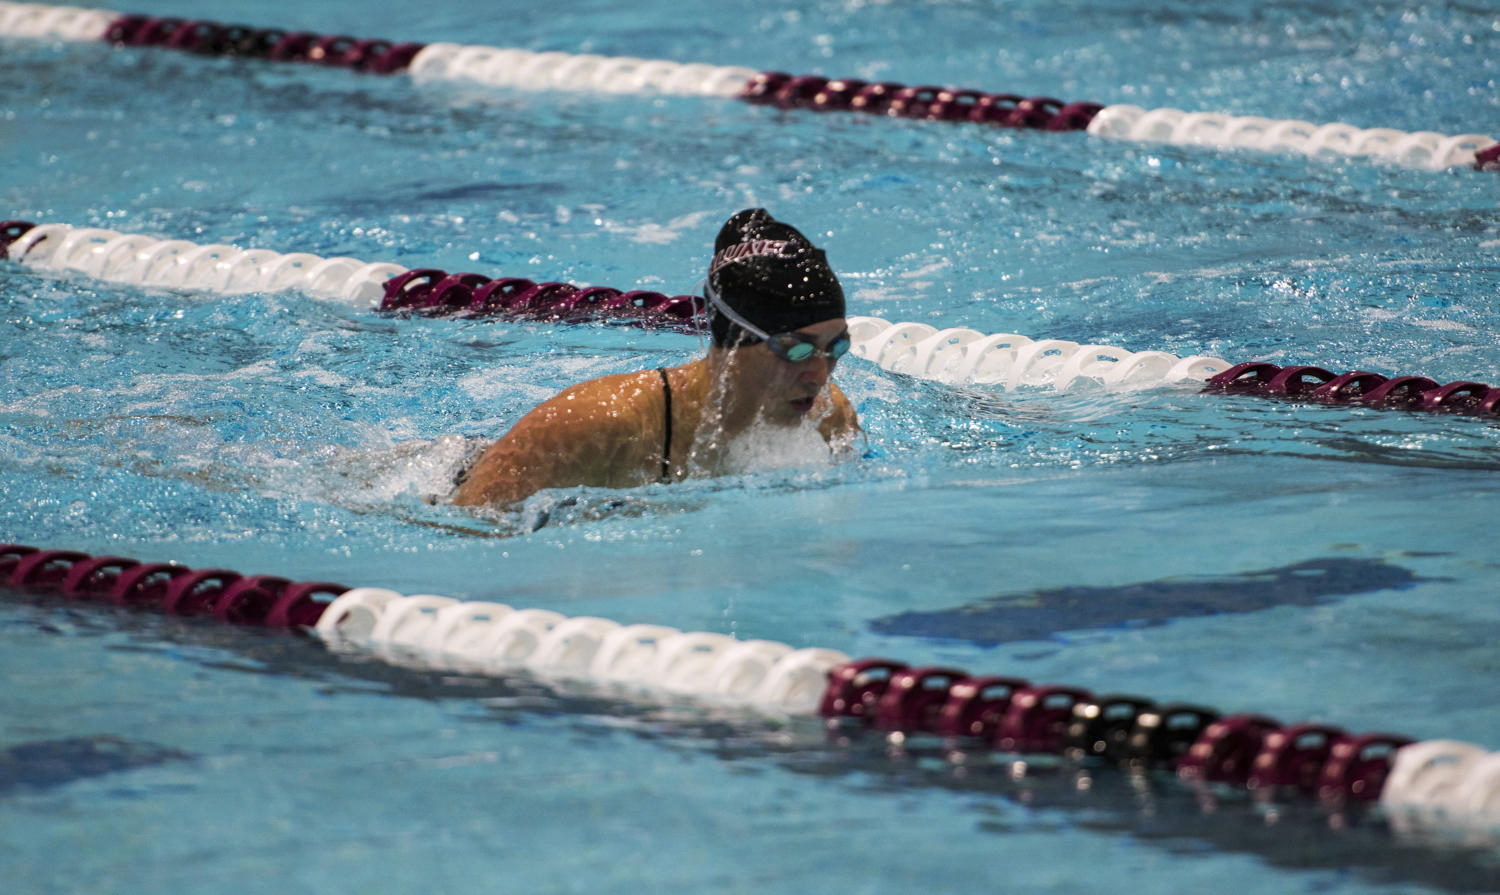 Freshman Cassidy Lounsbury swims the women's 50-yard breaststroke during the Saluki's first meet of the season against Lindenwood University on Friday, Sept. 15, 2017, at the Dr. Edward Shea Natatorium. The Salukis ranked low times in six races against the Lions. (Dylan Nelson | Dylan_Nelson99)